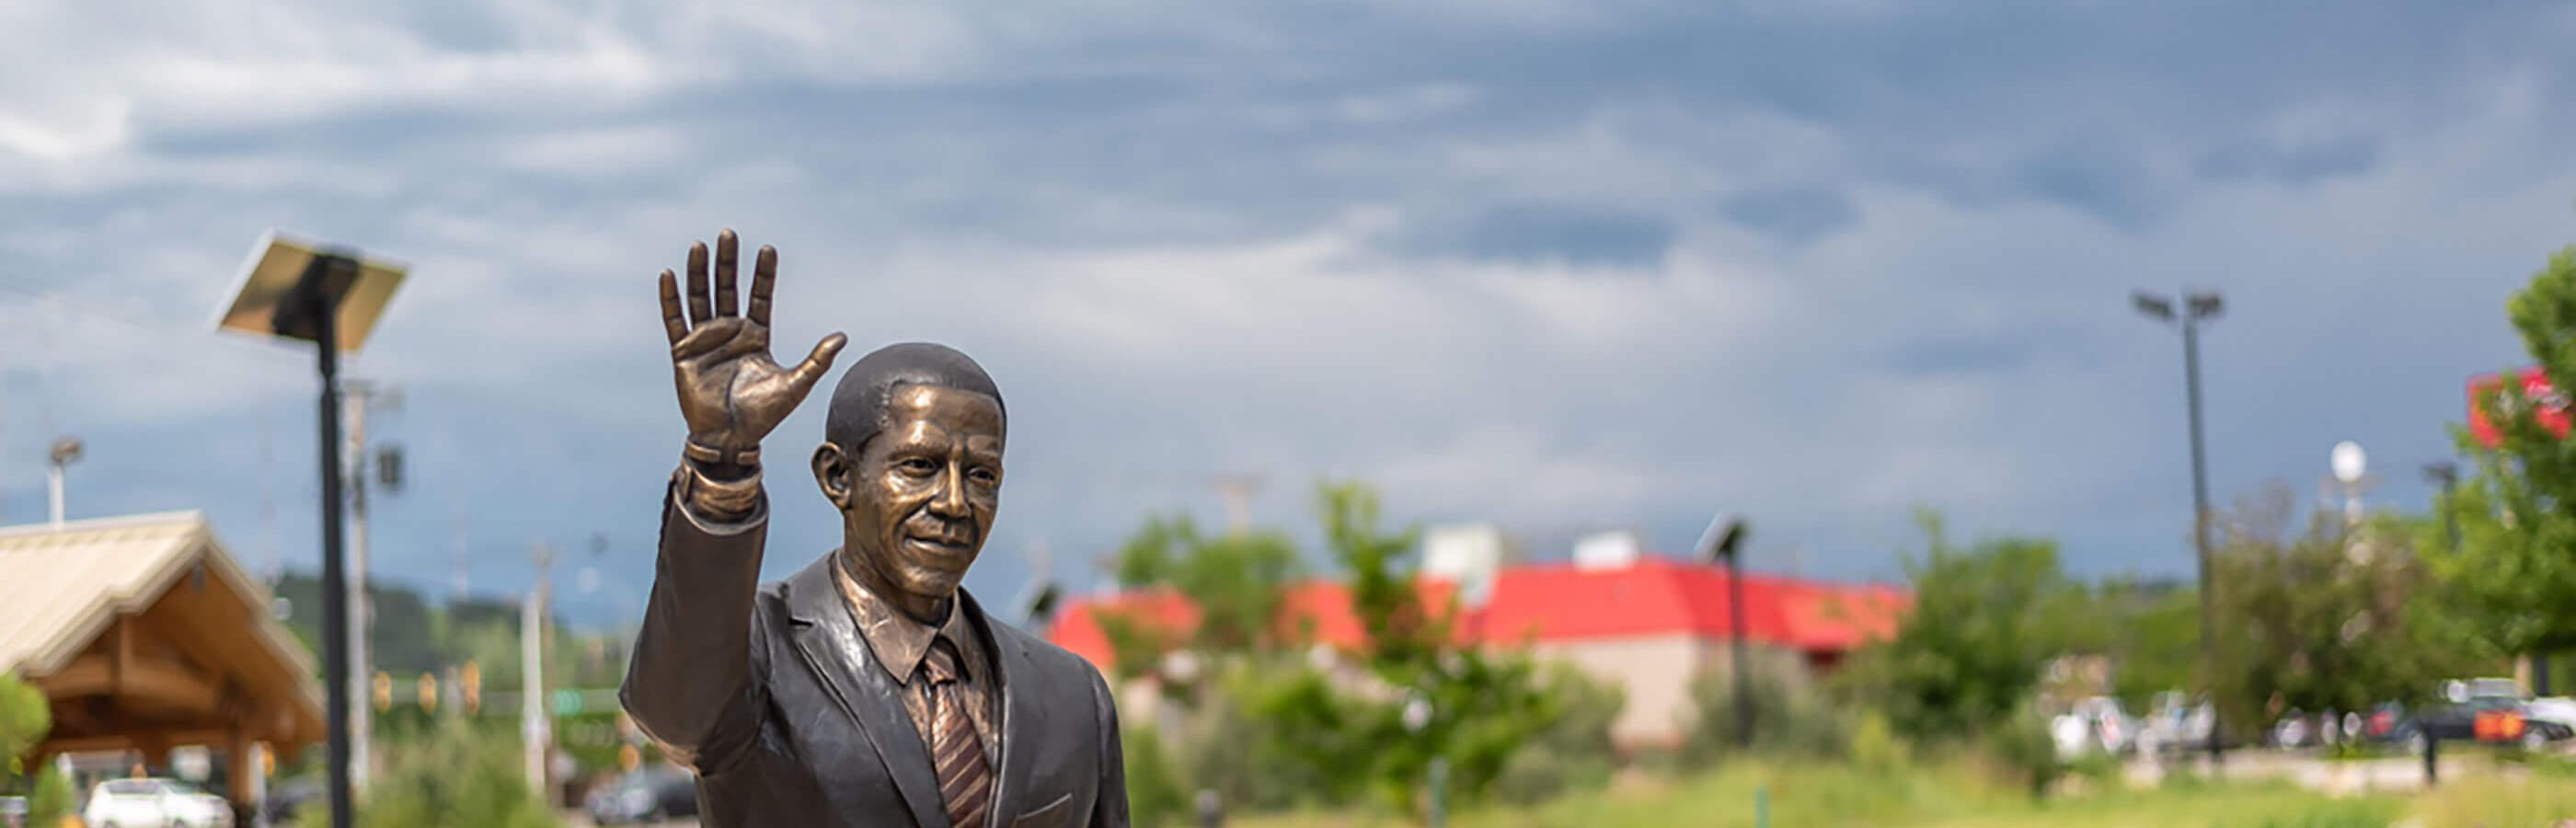 Barack Obama City of President Statue In Downtown Rapid City